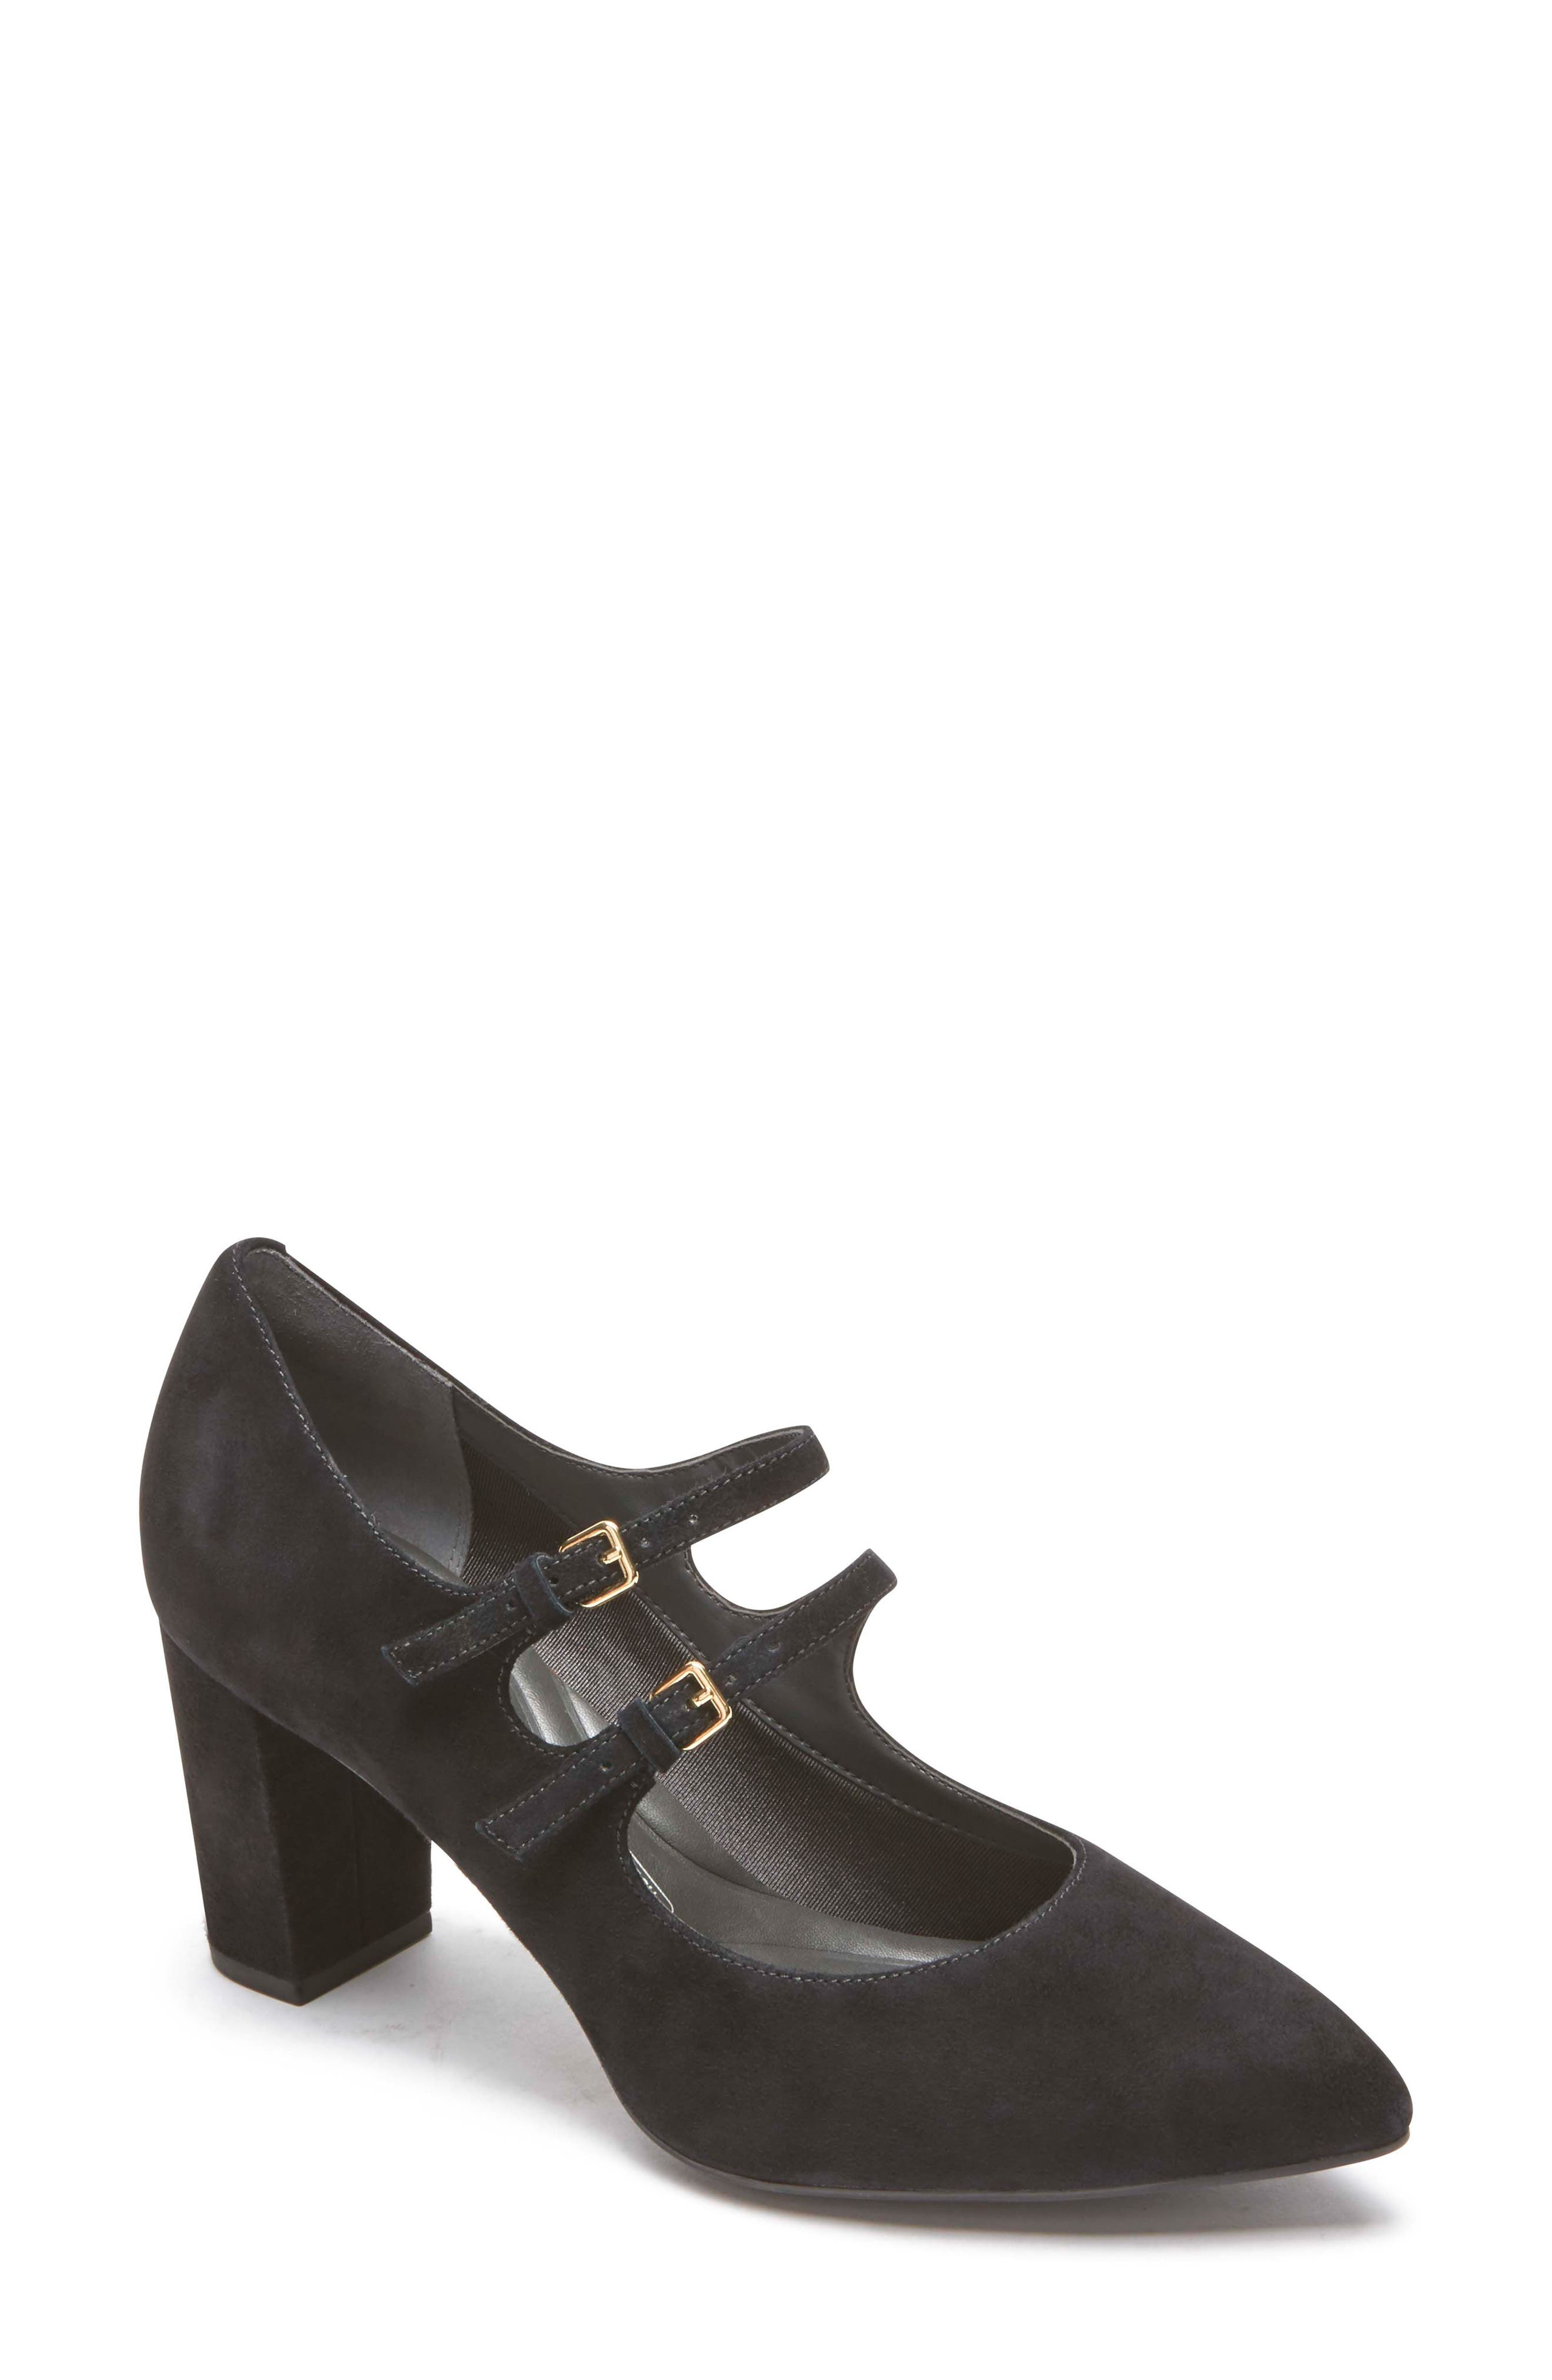 Violina Luxe Double Strap Mary Jane Pump,                             Main thumbnail 1, color,                             BLACK SUEDE